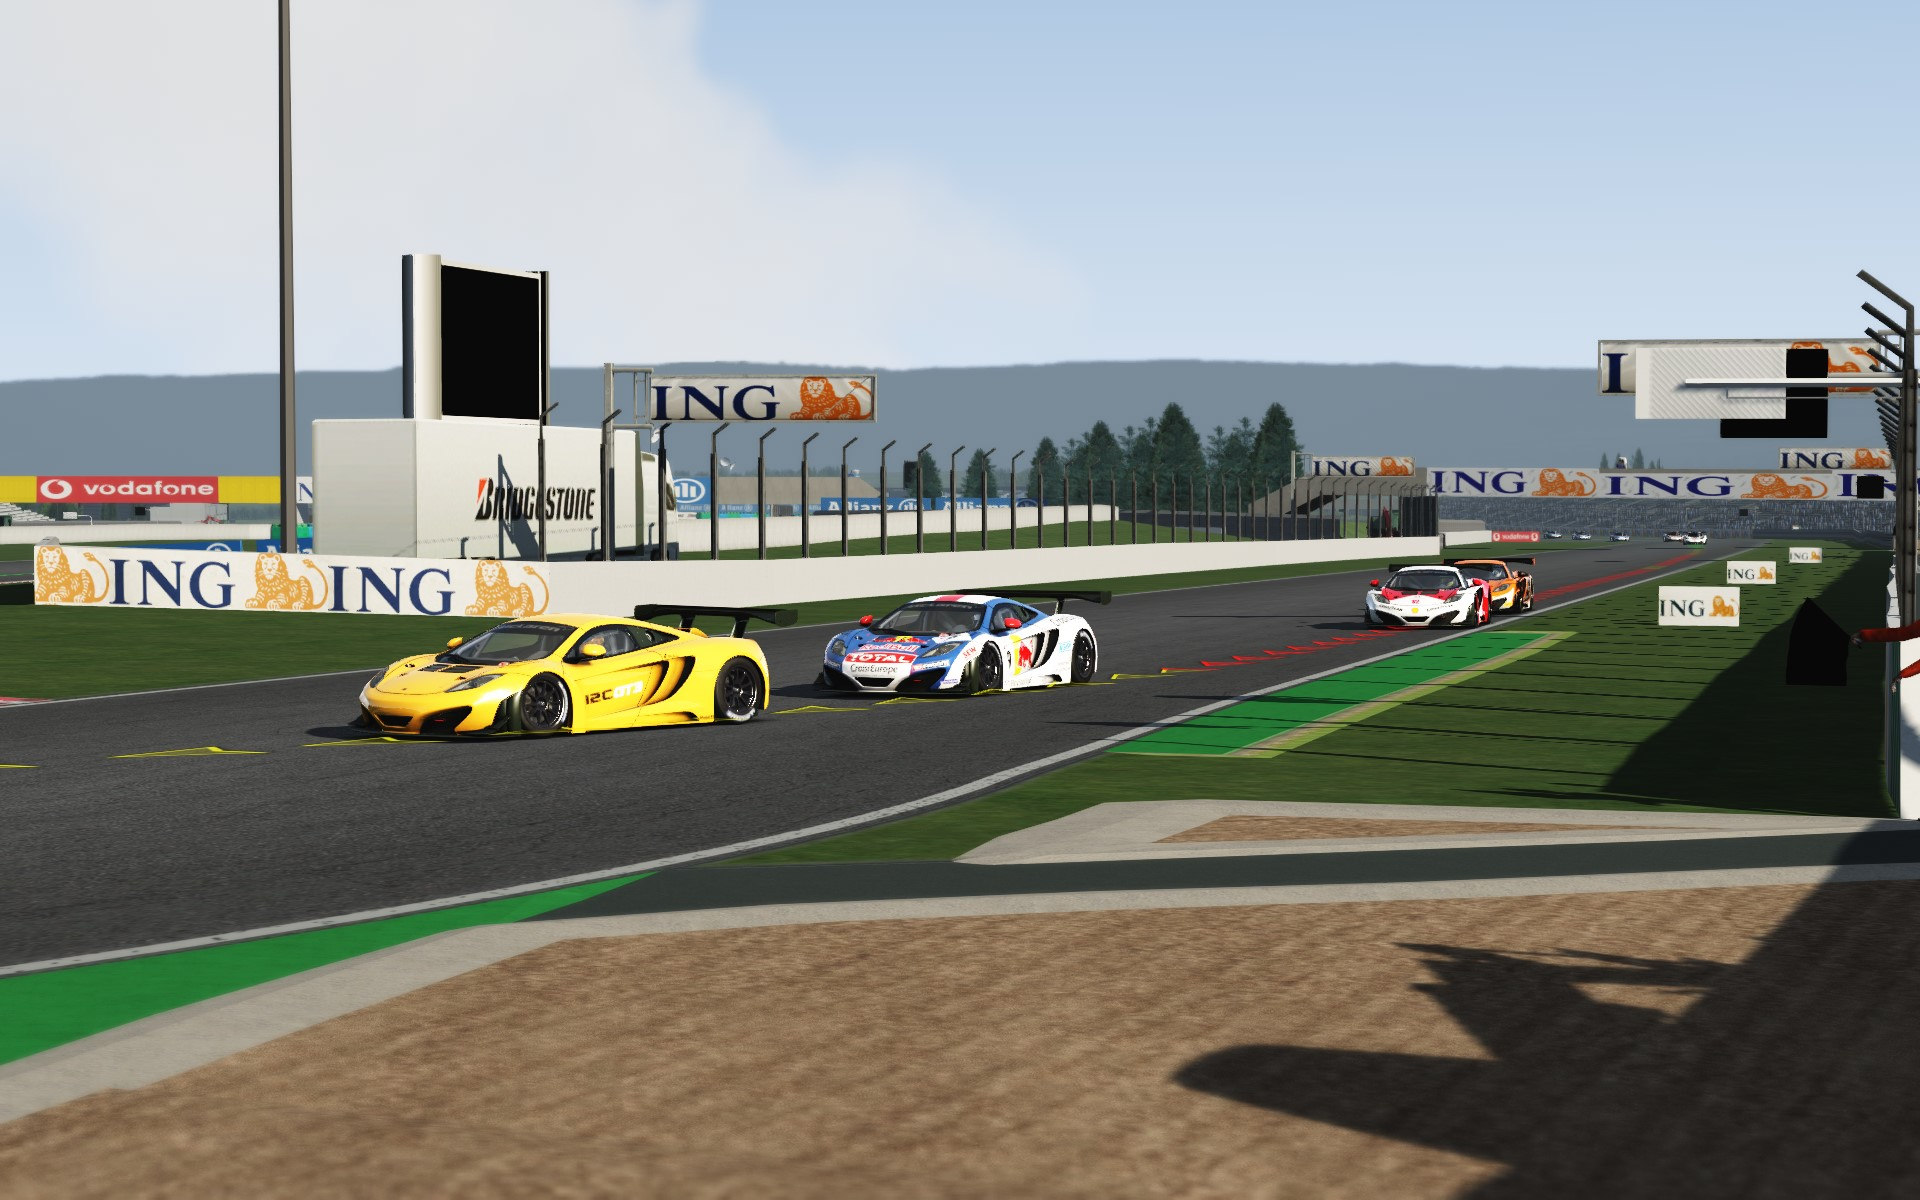 Screenshot_mclaren_mp412c_gt3_magny_cours_0_1_26-7-115-15-25-4.jpg